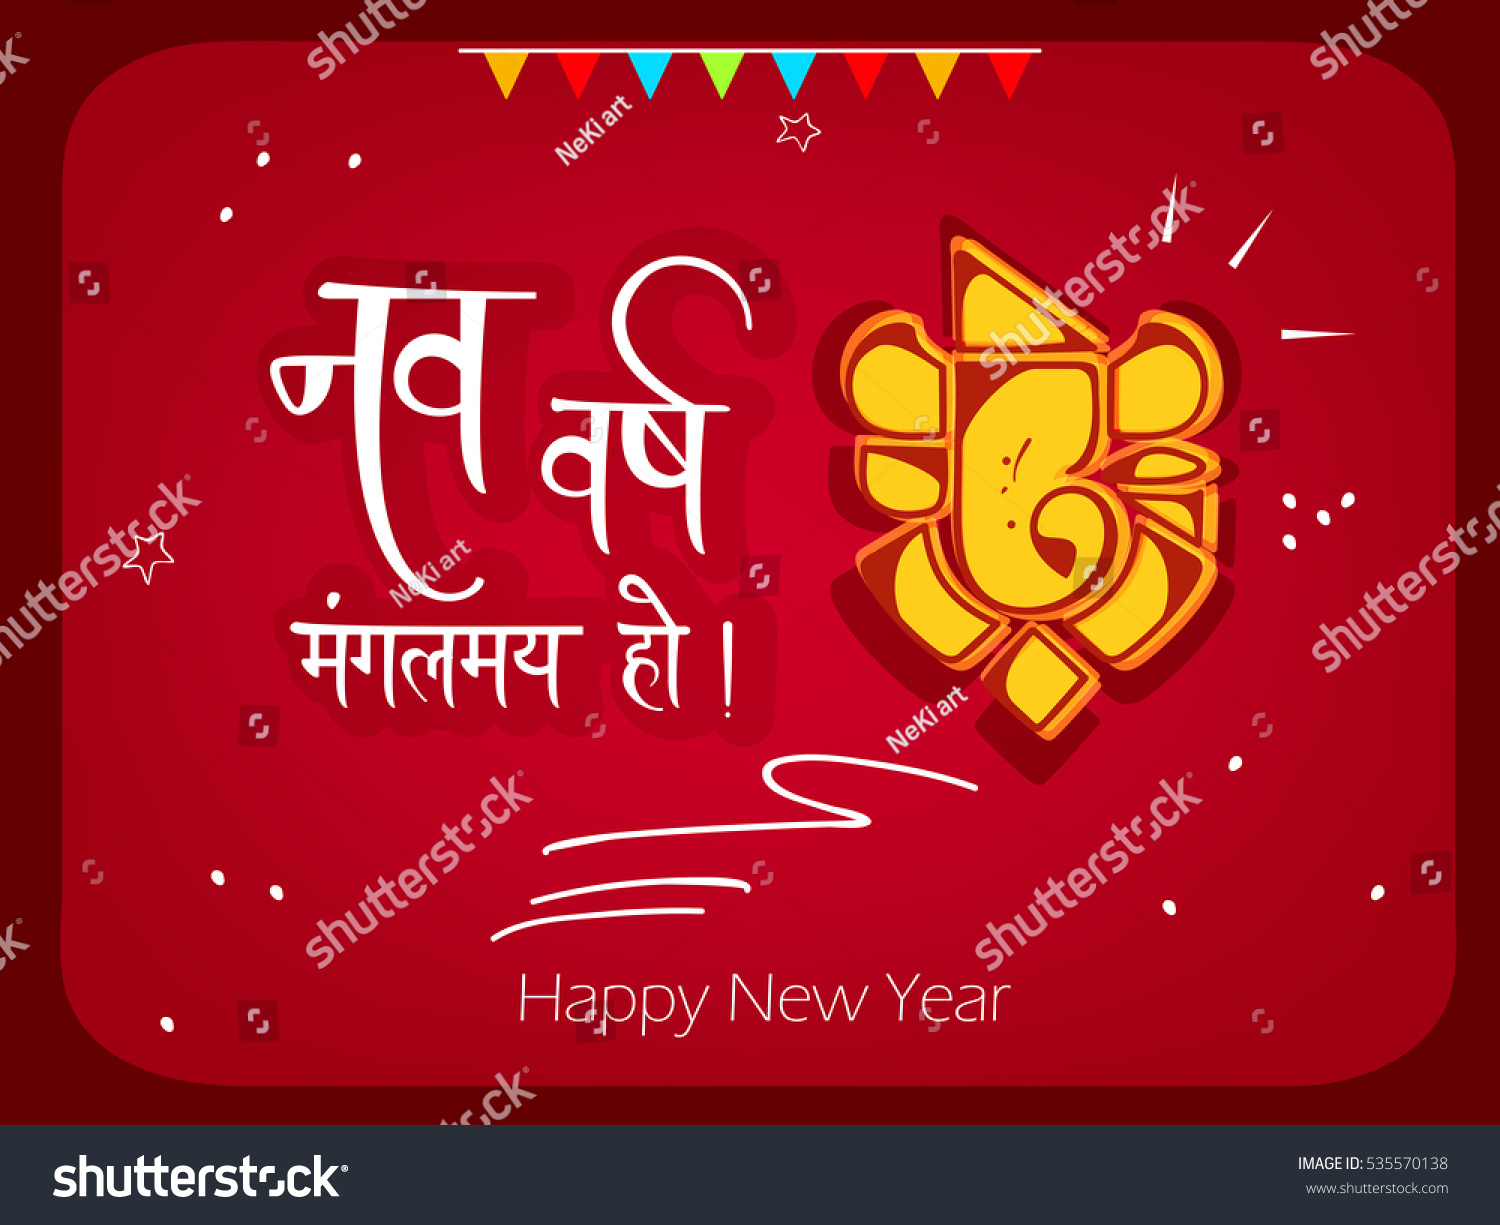 Vector Illustration Creative Happy New Year Stock Vector 535570138